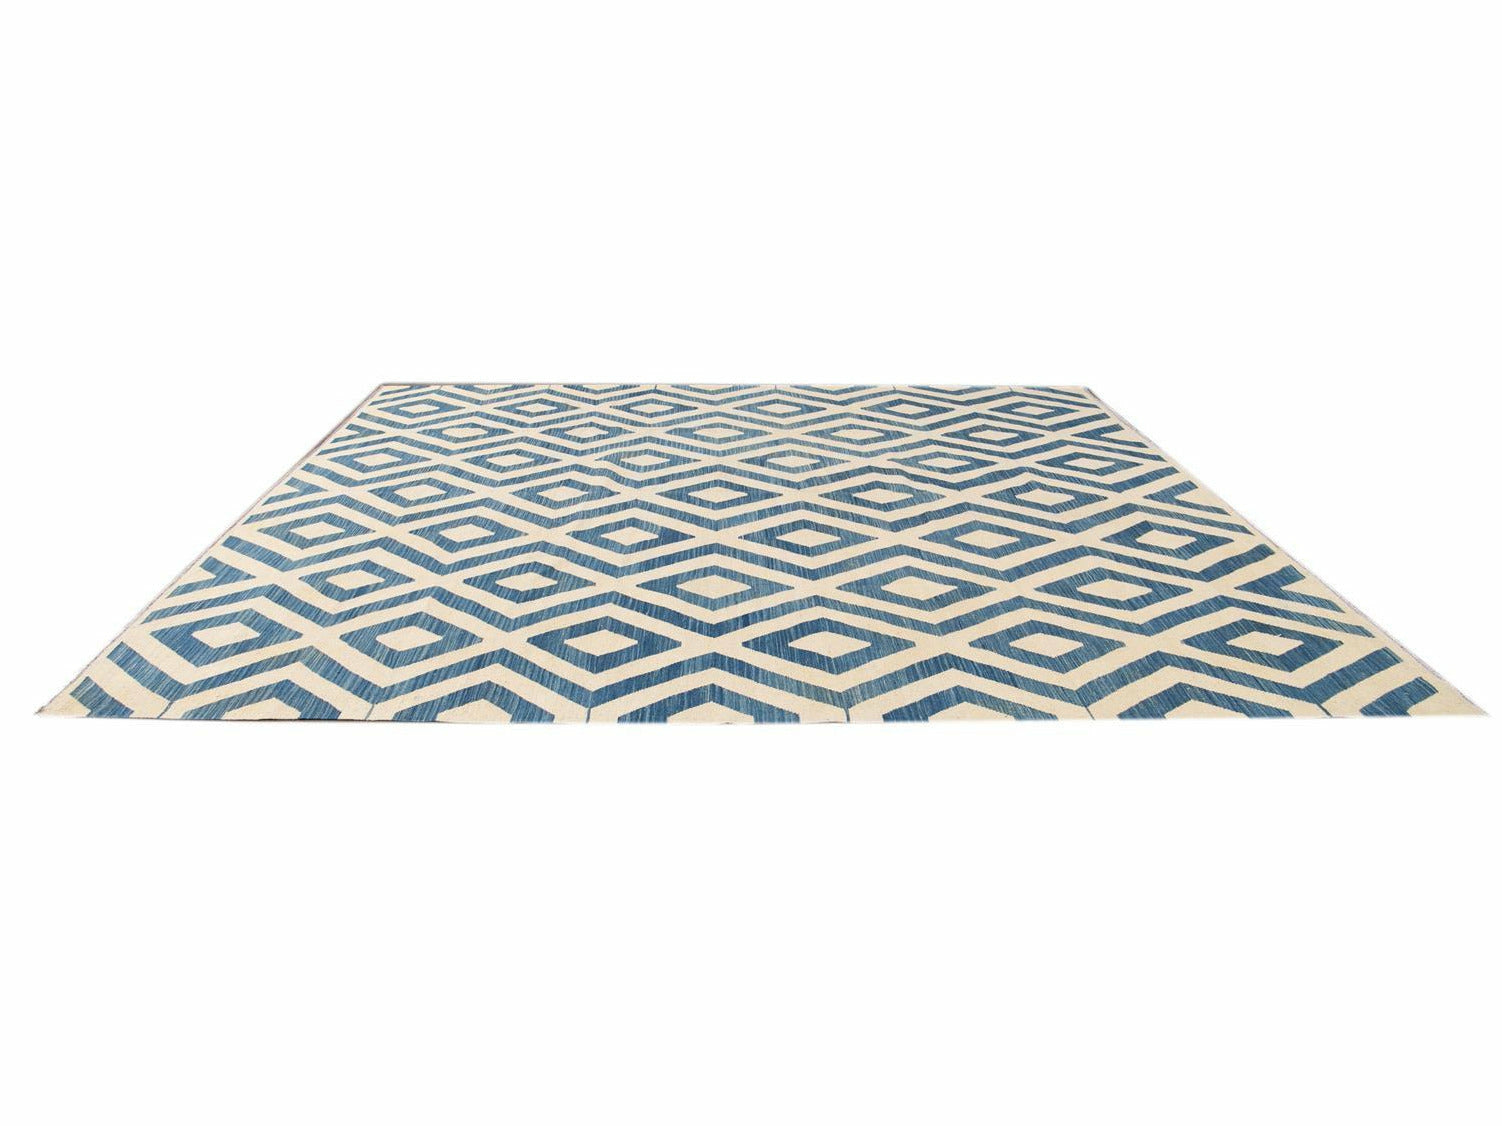 21st Century Contemporary Flatweave Kilim Wool Rug 11 X 12